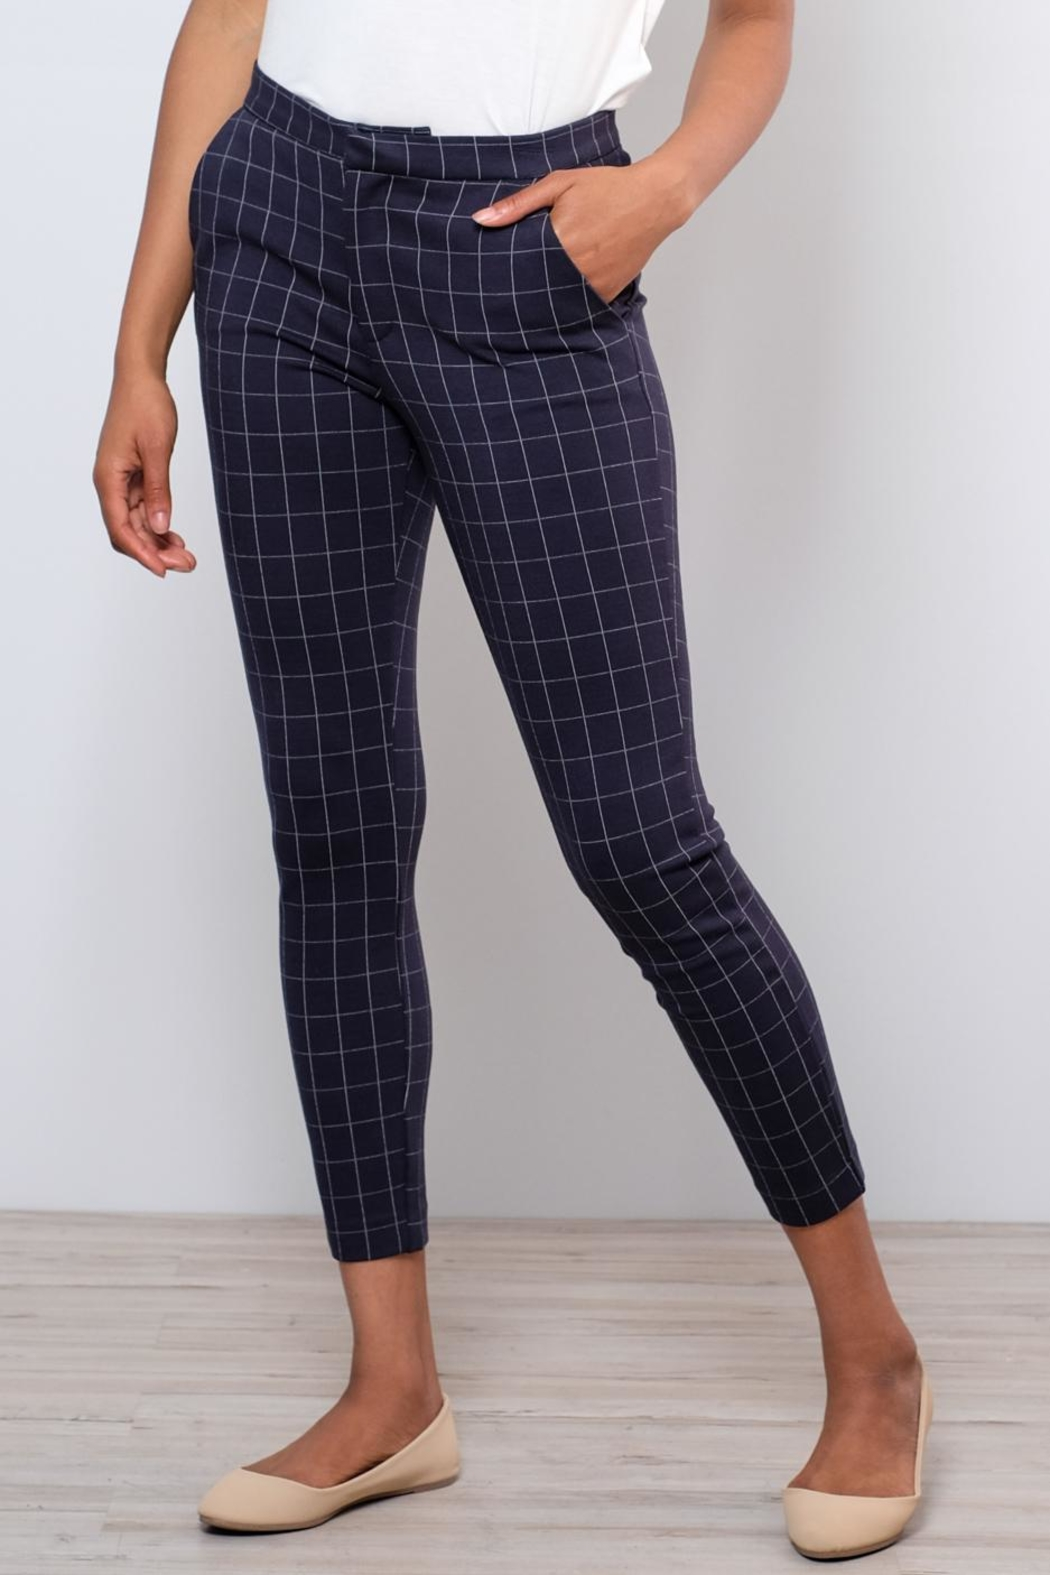 ICHI Grid Pattern Pants - Main Image